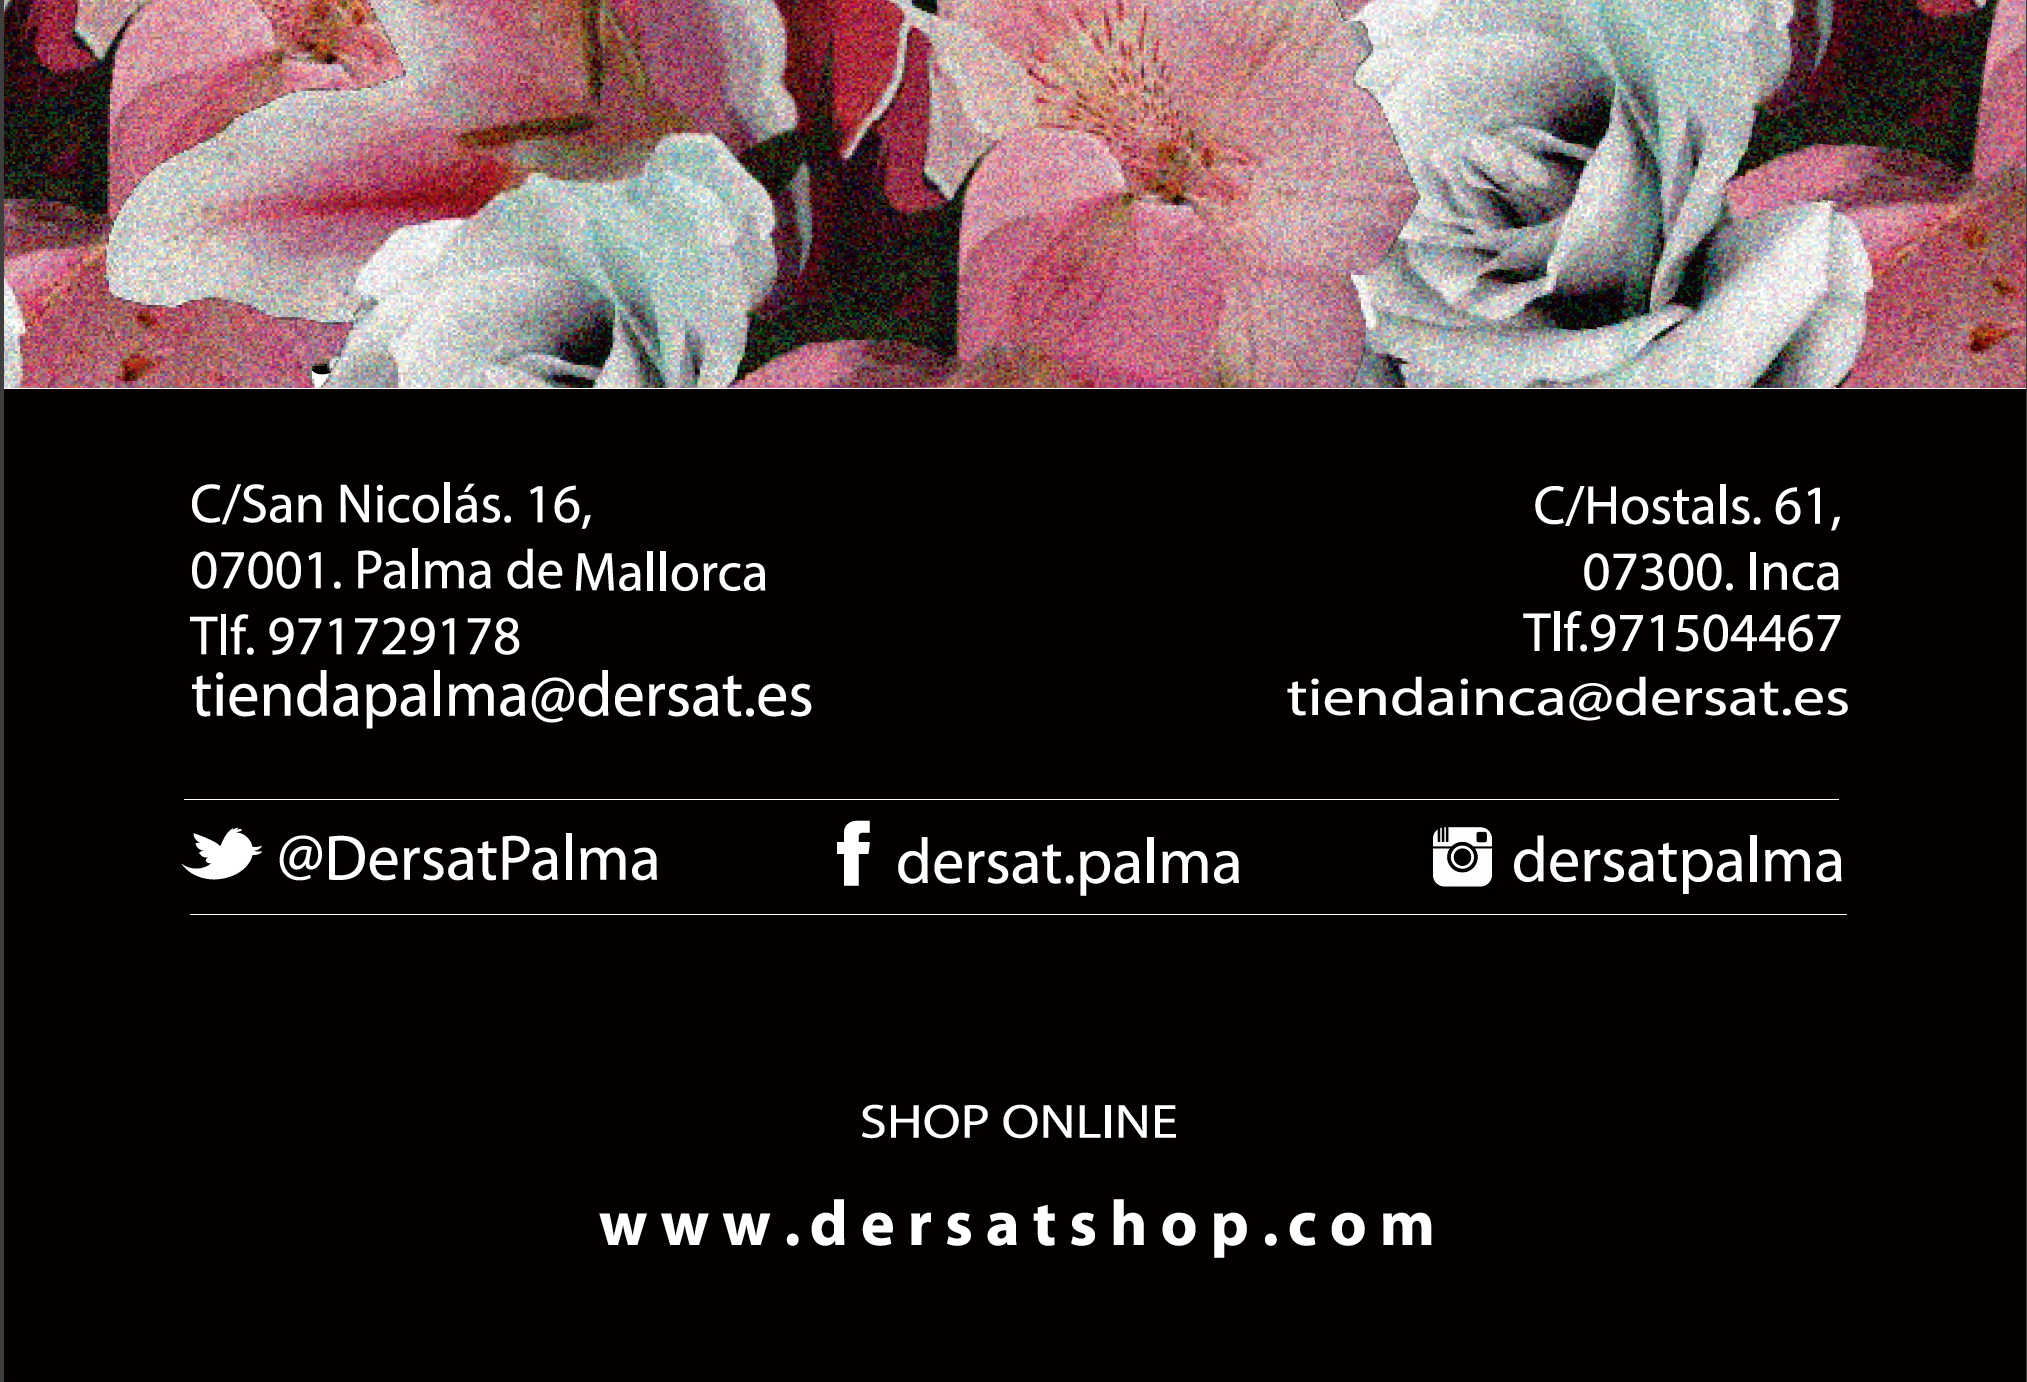 Exelent business cards store inspiration business card ideas amparo collazo business cards newsletters for clothing store reheart Image collections